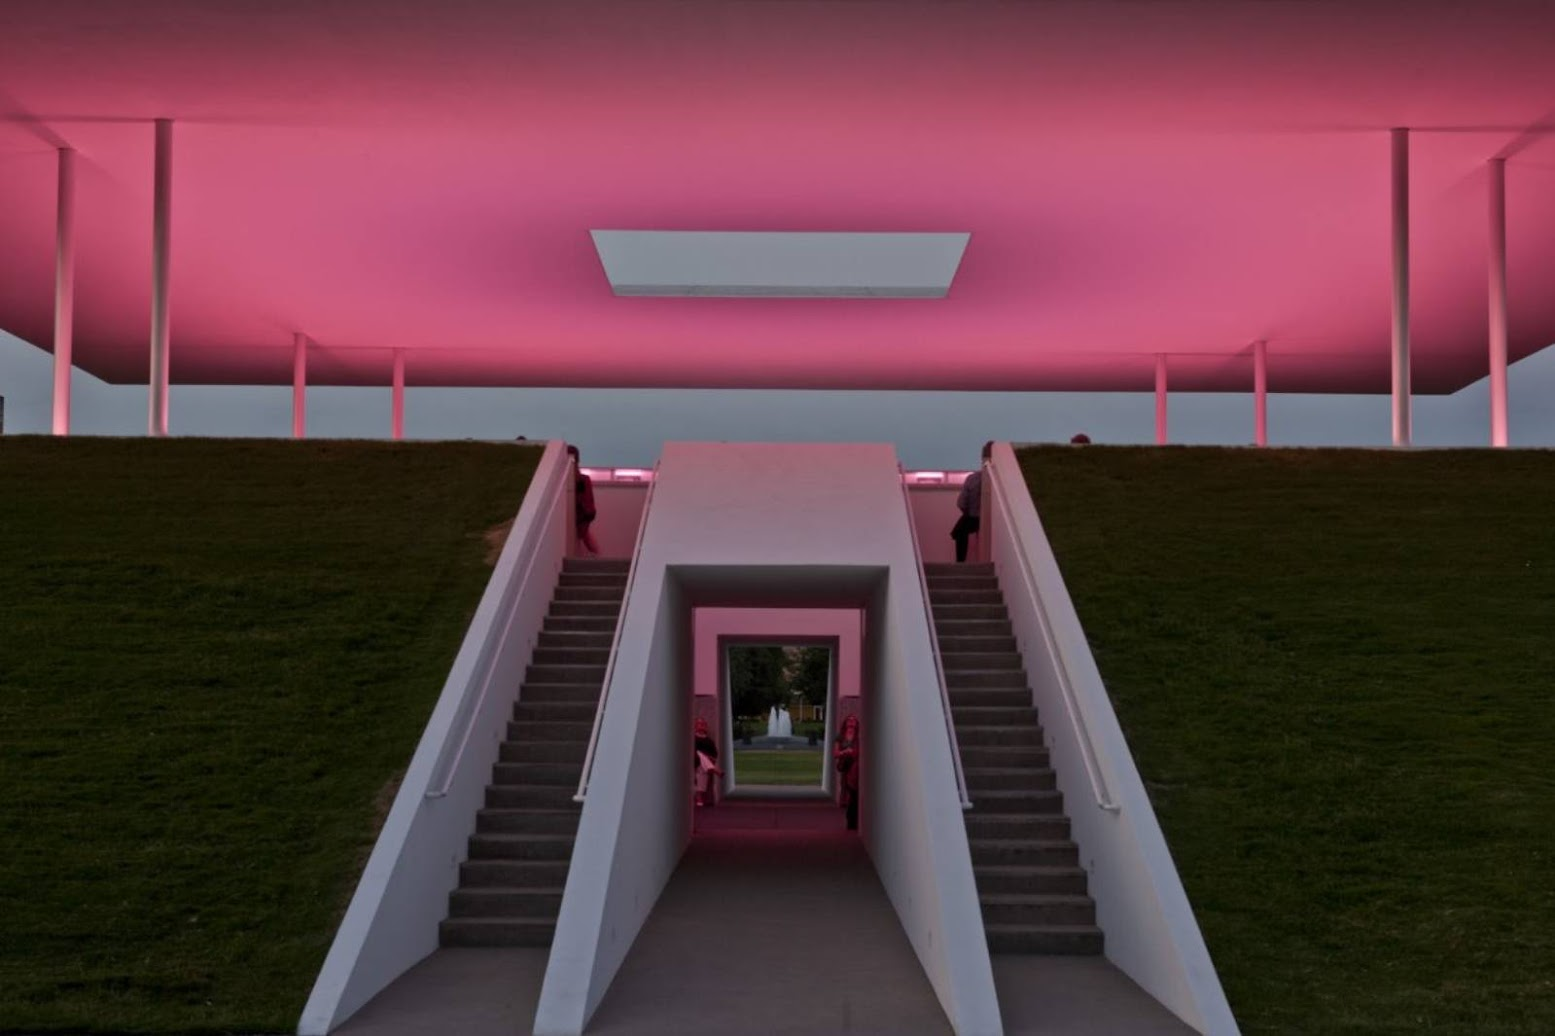 Arganzuela, Madrid, Spagna: [TWILIGHT EPIPHANY BY JAMES TURRELL]